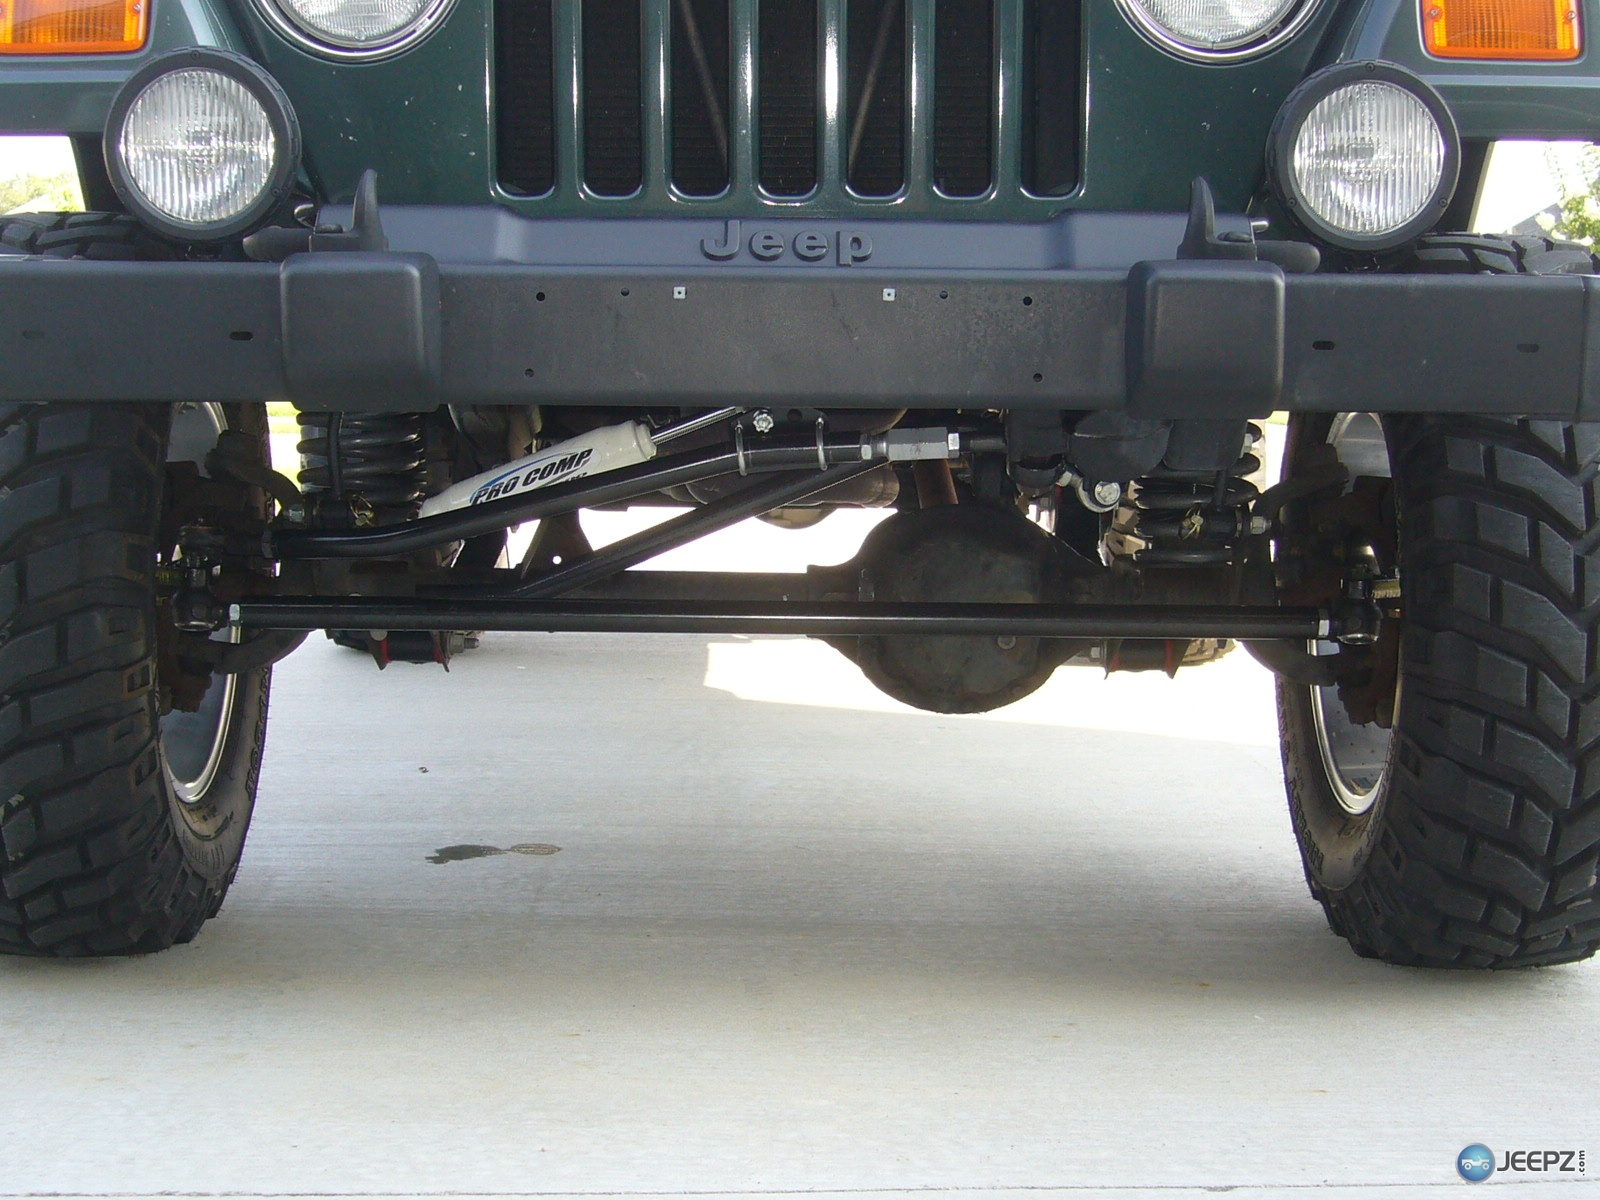 8964R07 Automatic Transmission Assembly furthermore 2016 Jeep Wrangler Unlimited Dealer Serving Atlanta likewise C7 pinion yokes front and rear end together with Diy 4x4 Water Tank Pump Filtration And Treatment further P1931 dana spicer 5 676x universal joint 1810 series half round dr. on jeep driveshaft